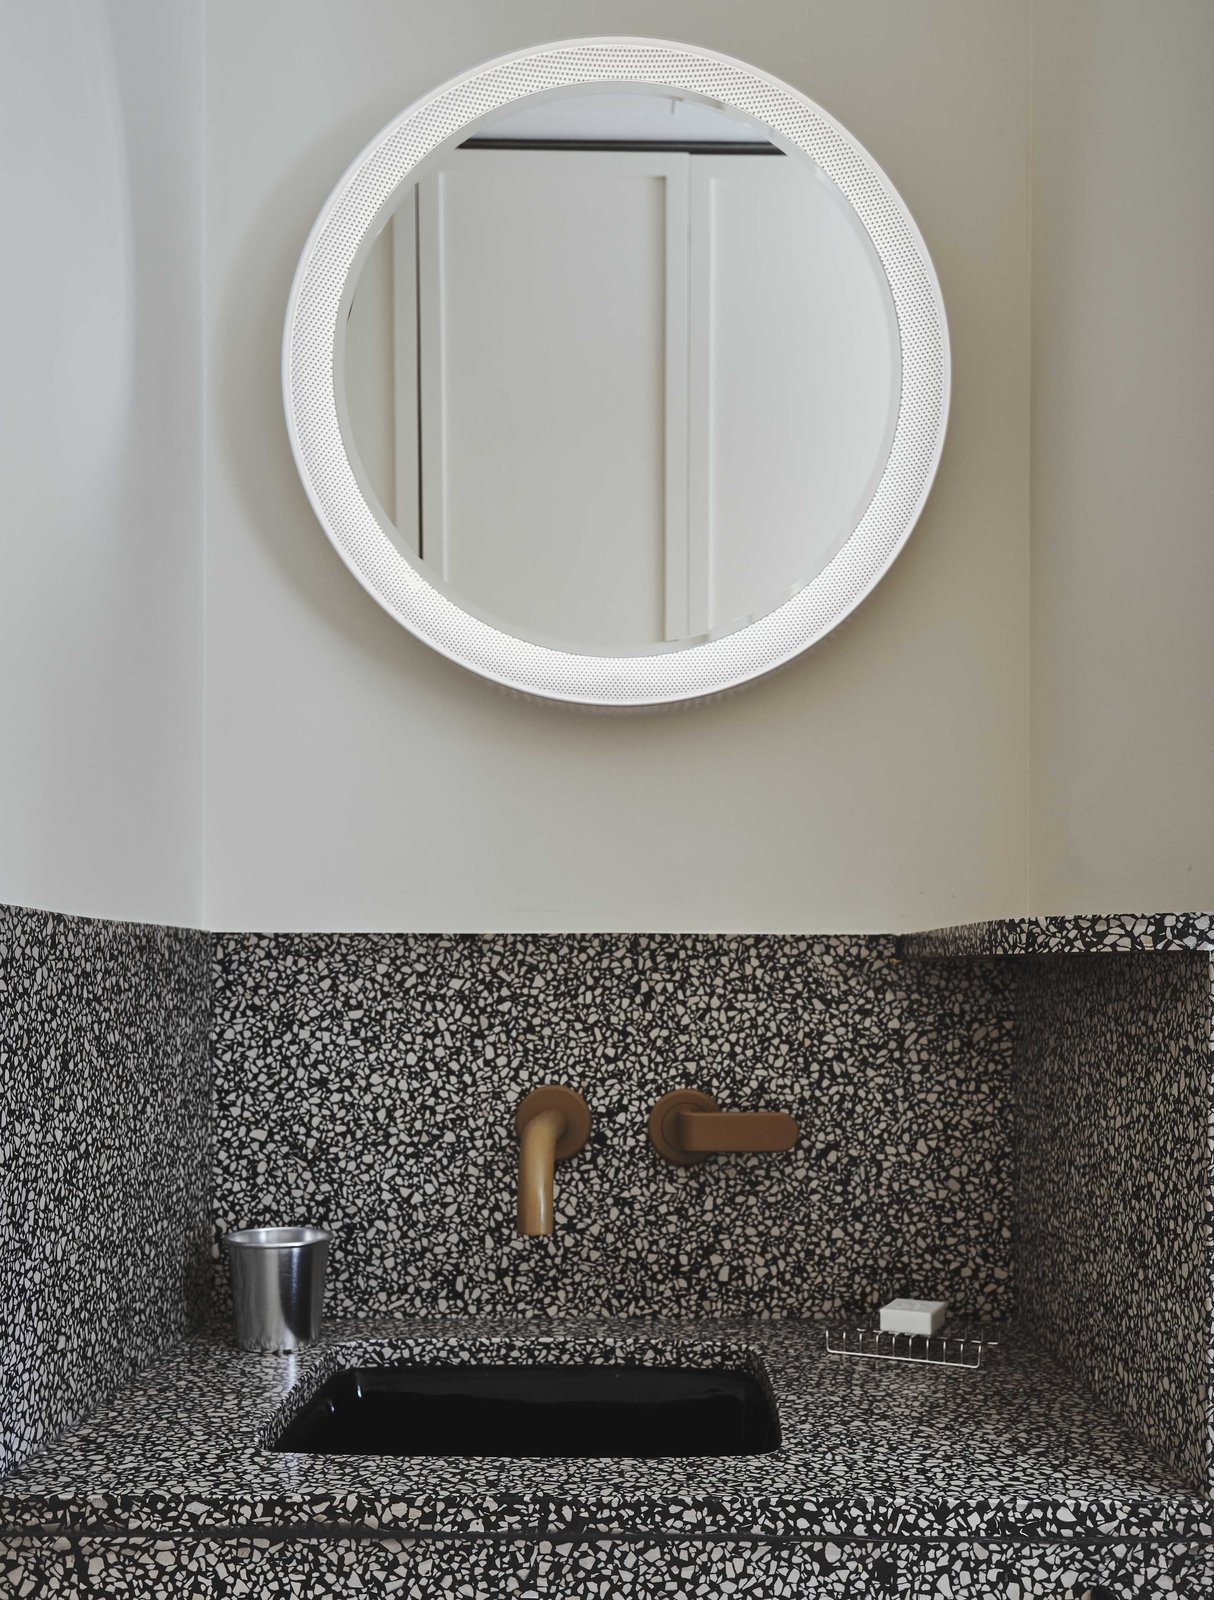 Bath, Wall, Stone, Accent, Undermount, and Glass Tile The intricate, speckled design of the vanity is paired with clean white walls and an illuminated circular mirror.  Bath Undermount Stone Photos from Ace Hotel's Sister City Opens in New York—and it's a Beaut